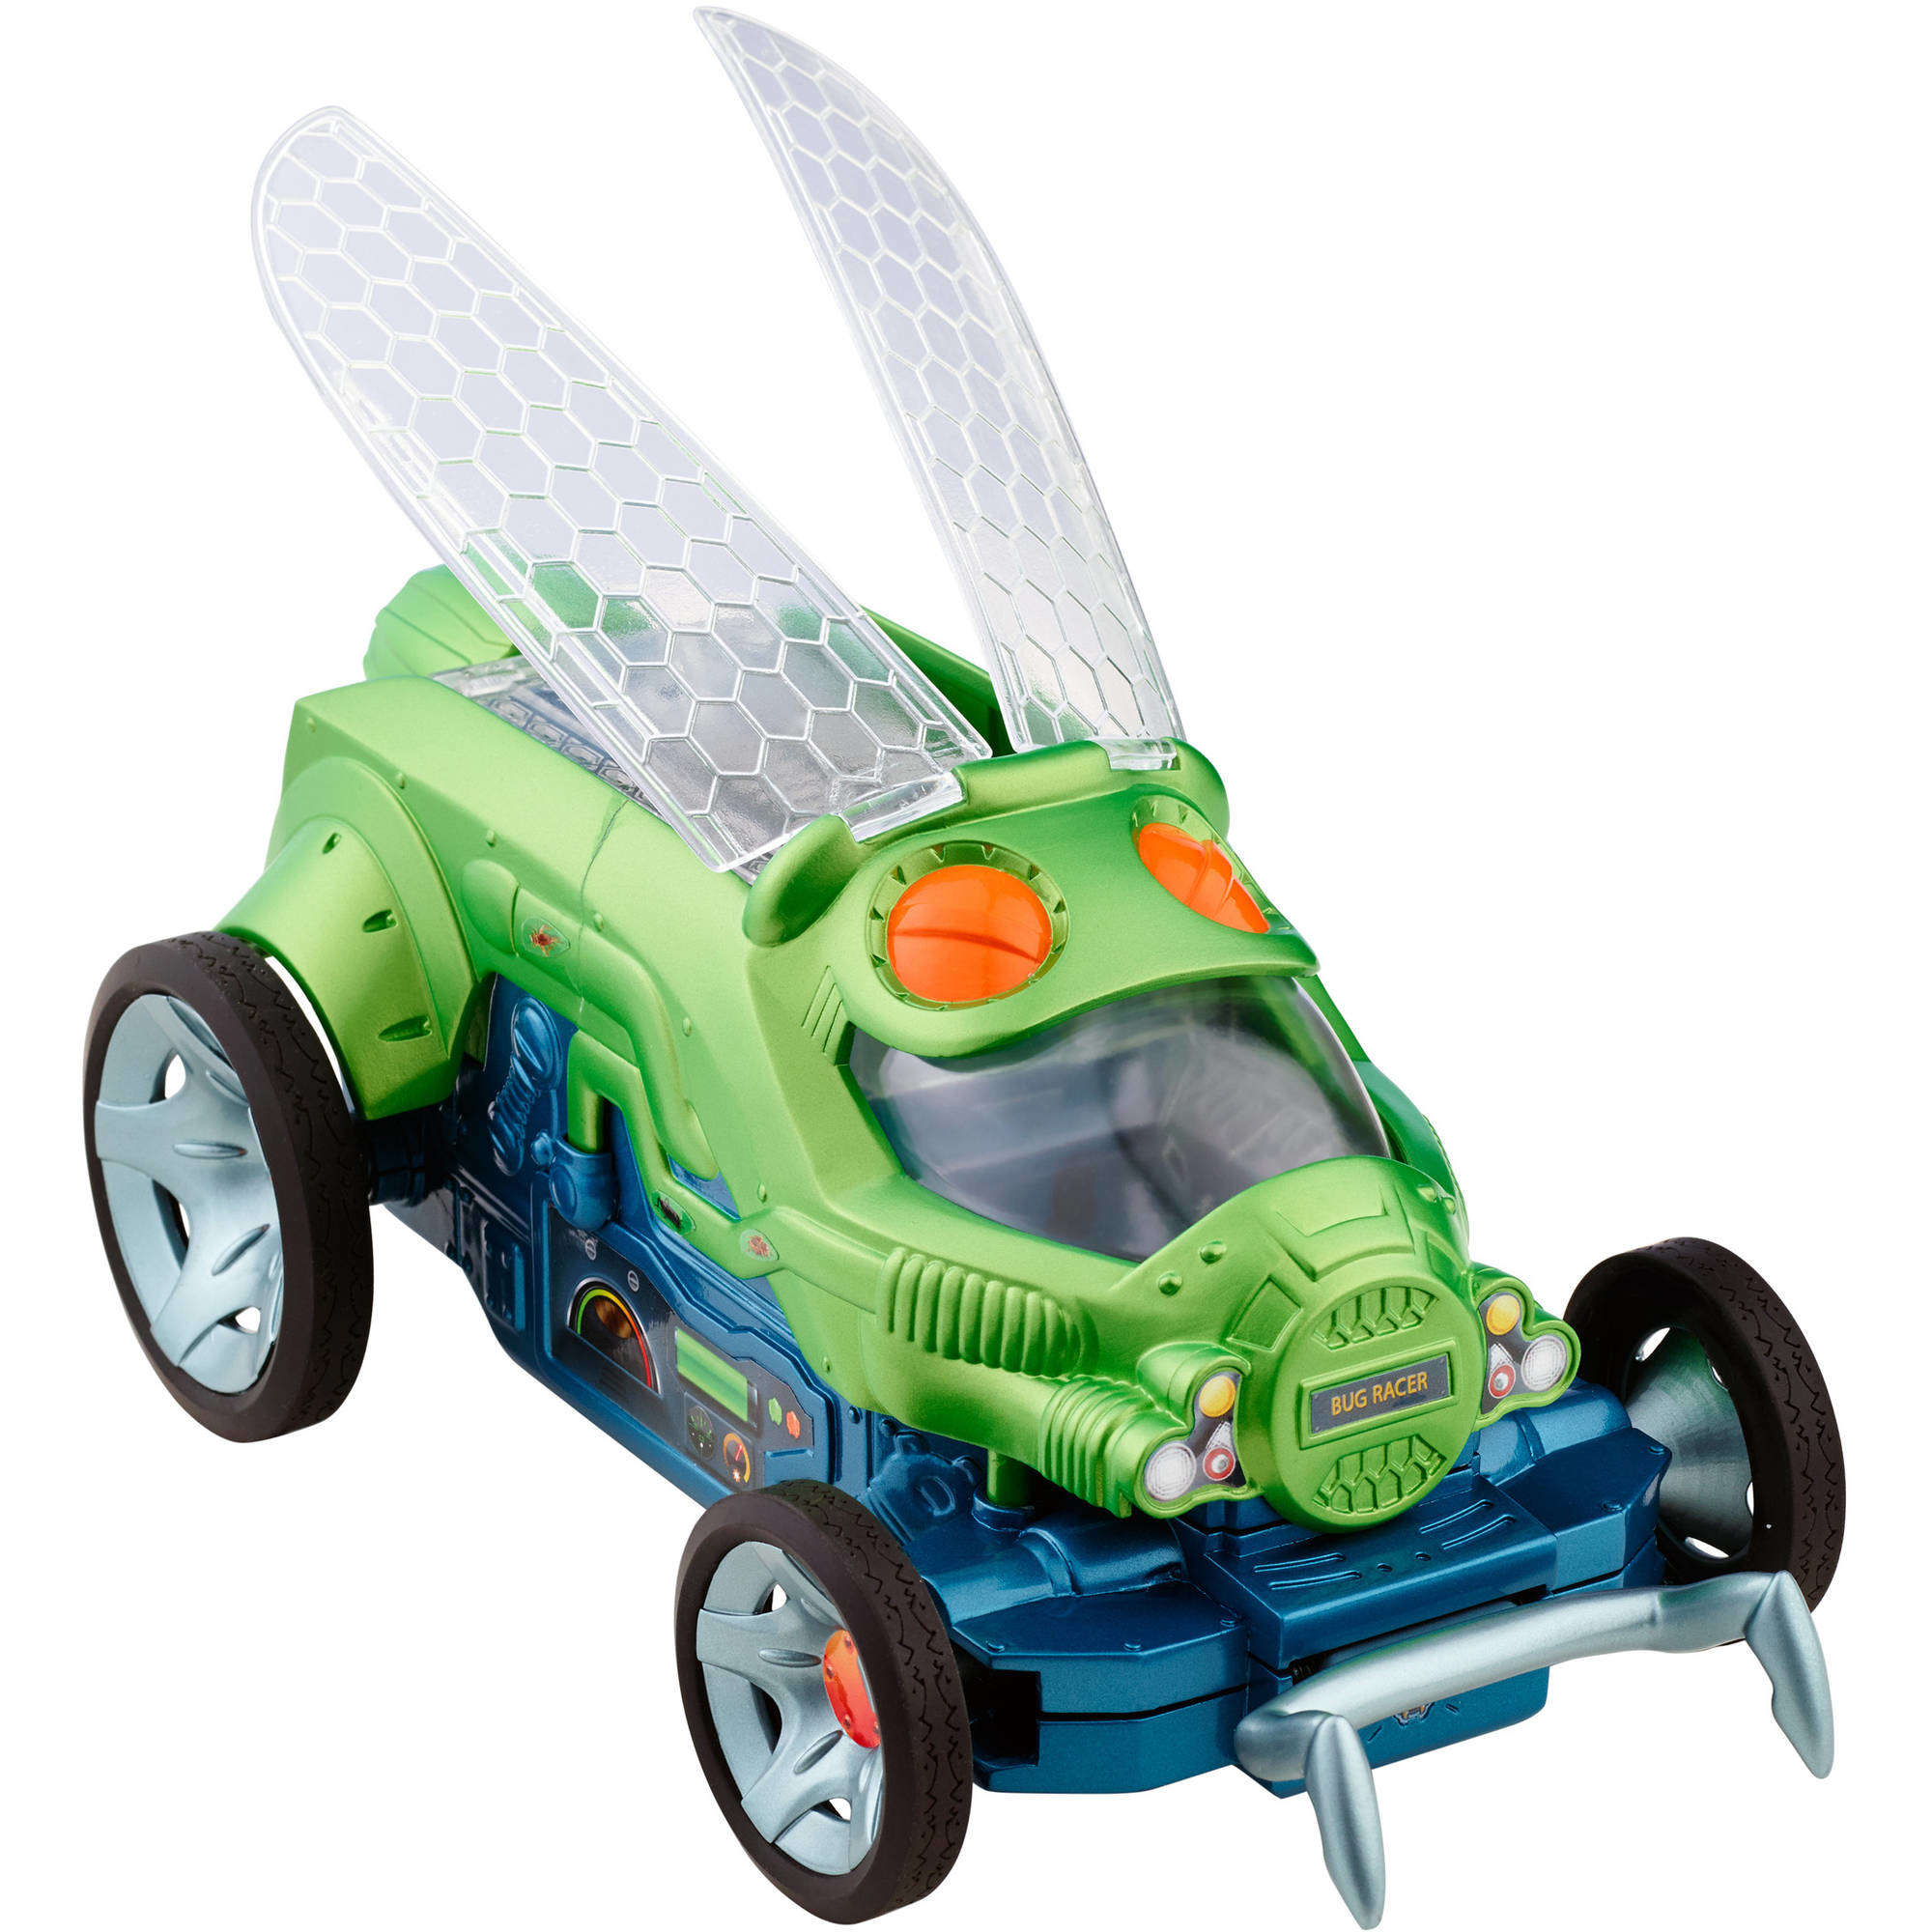 Bug Racer Powered by Elecrickety